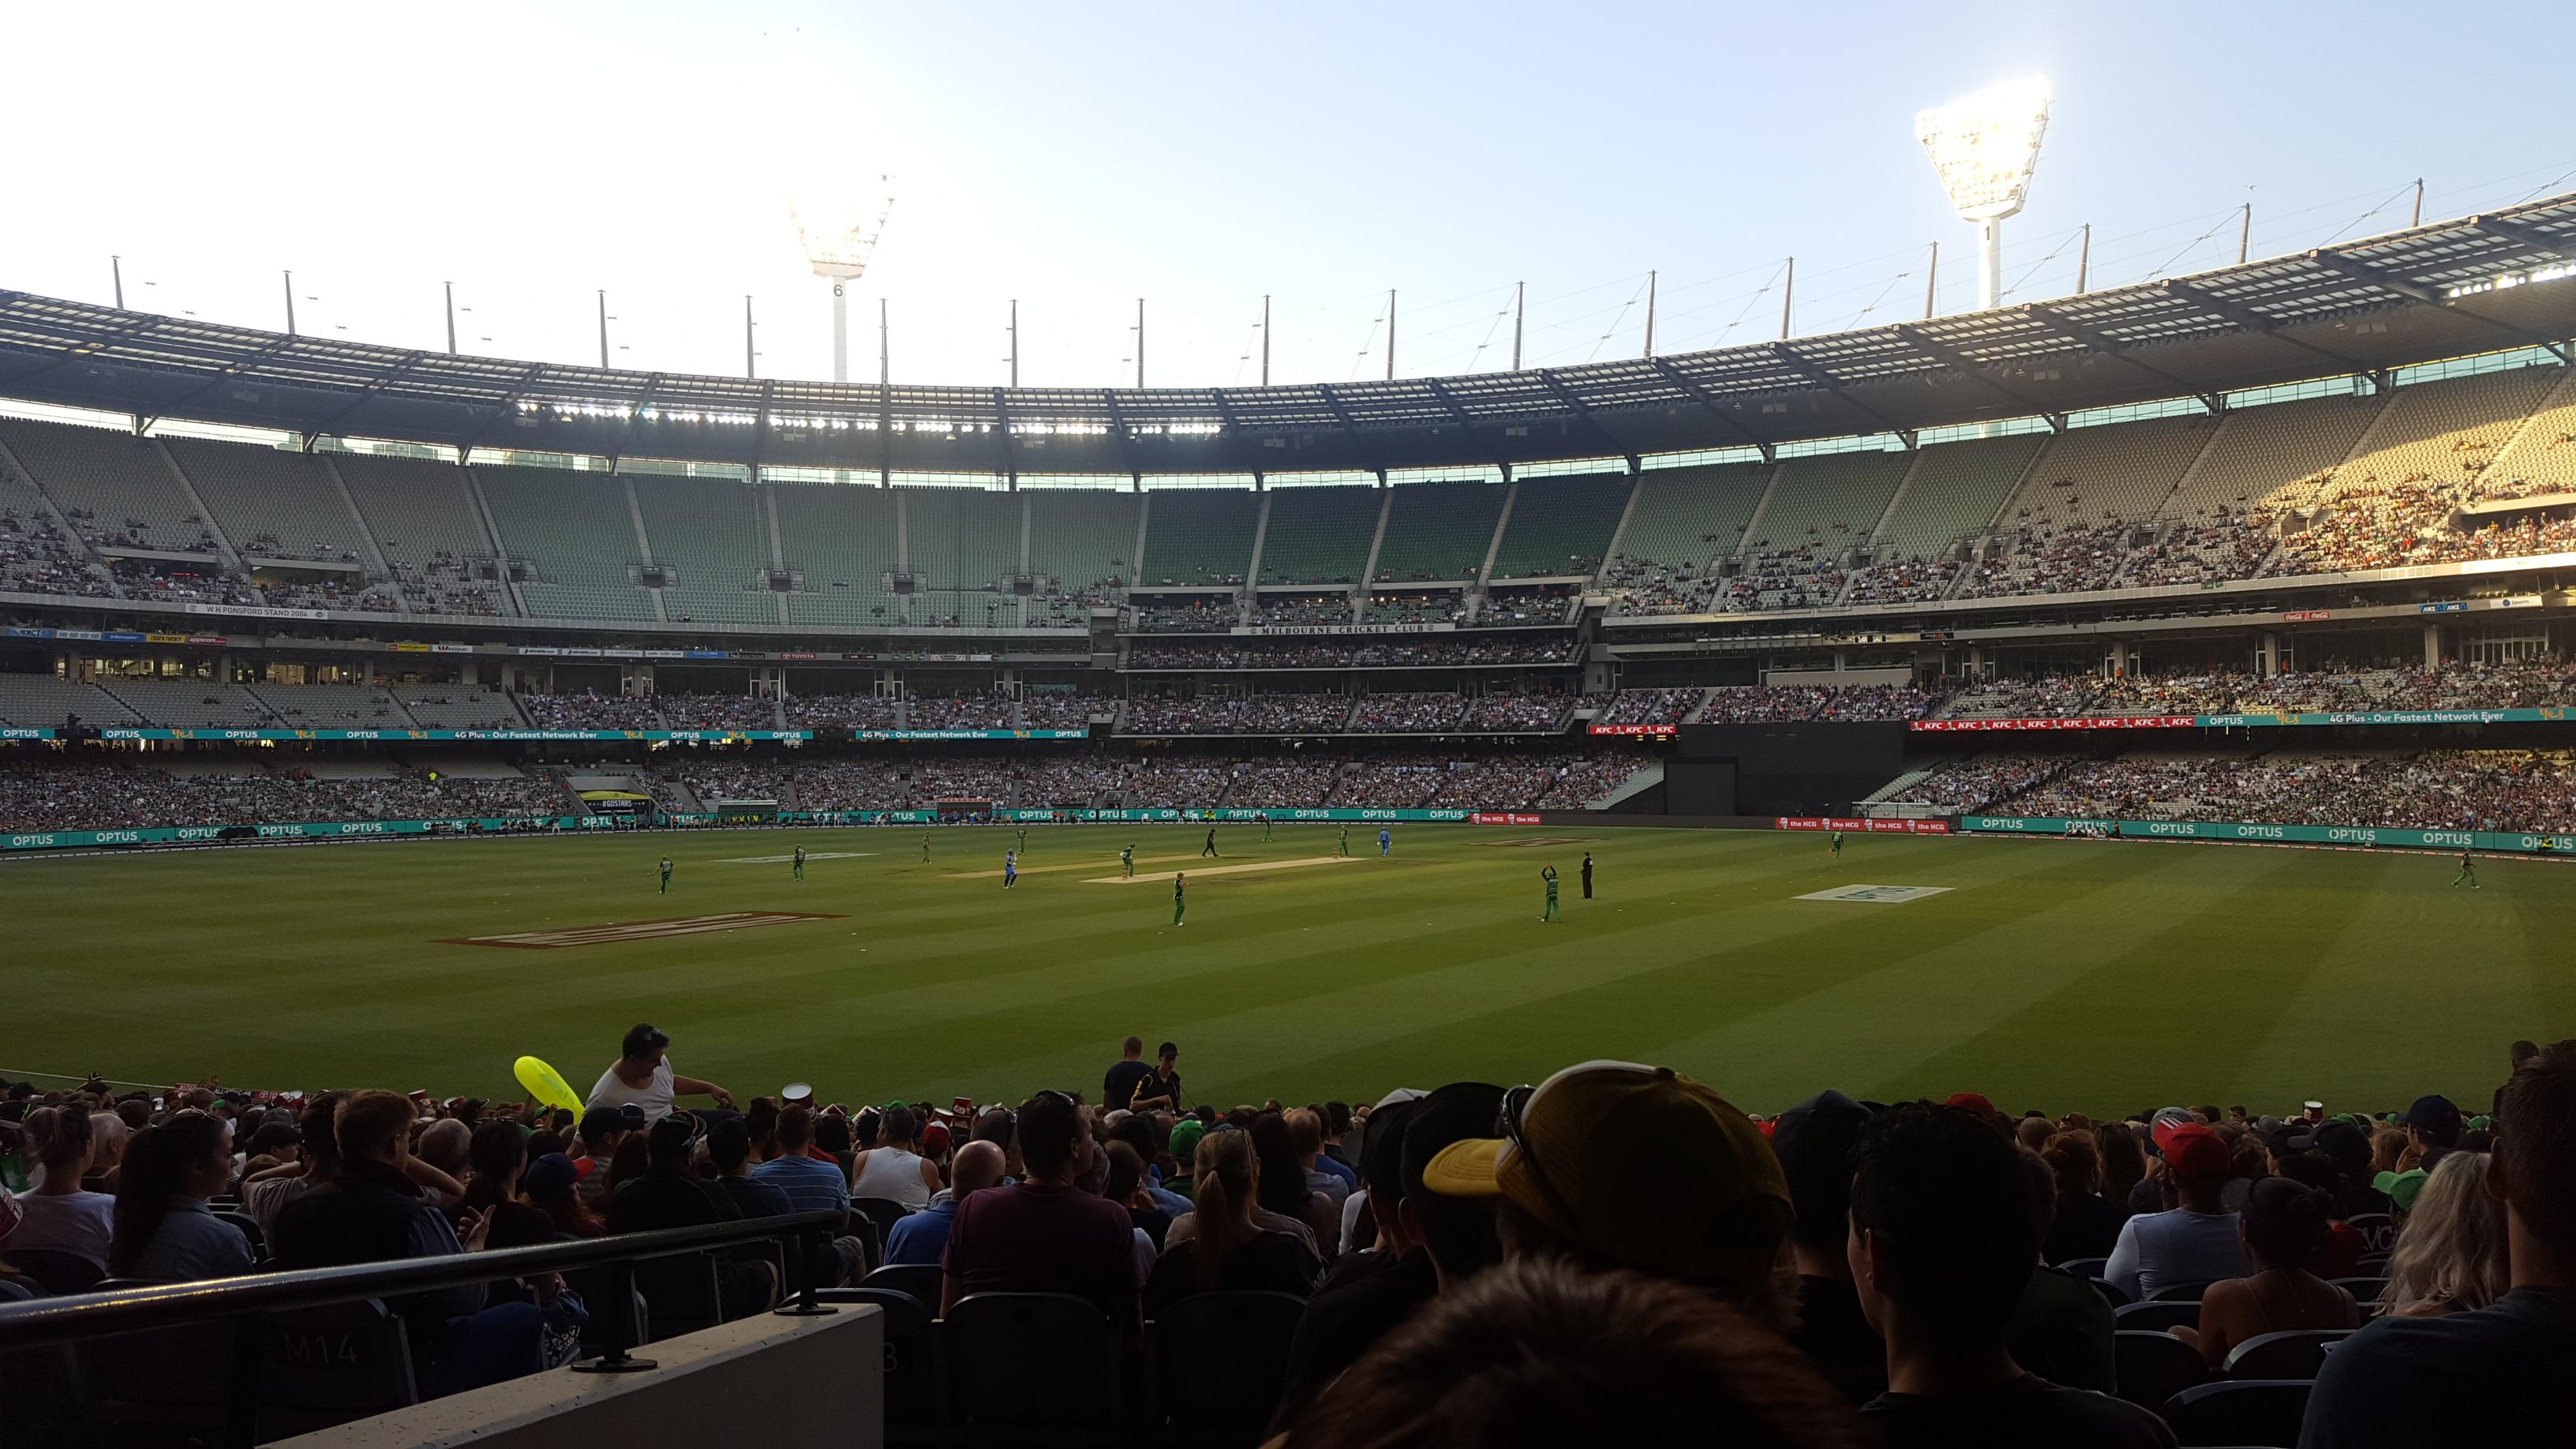 Melbourne Cricket Ground Section 13 Row U Seat GA